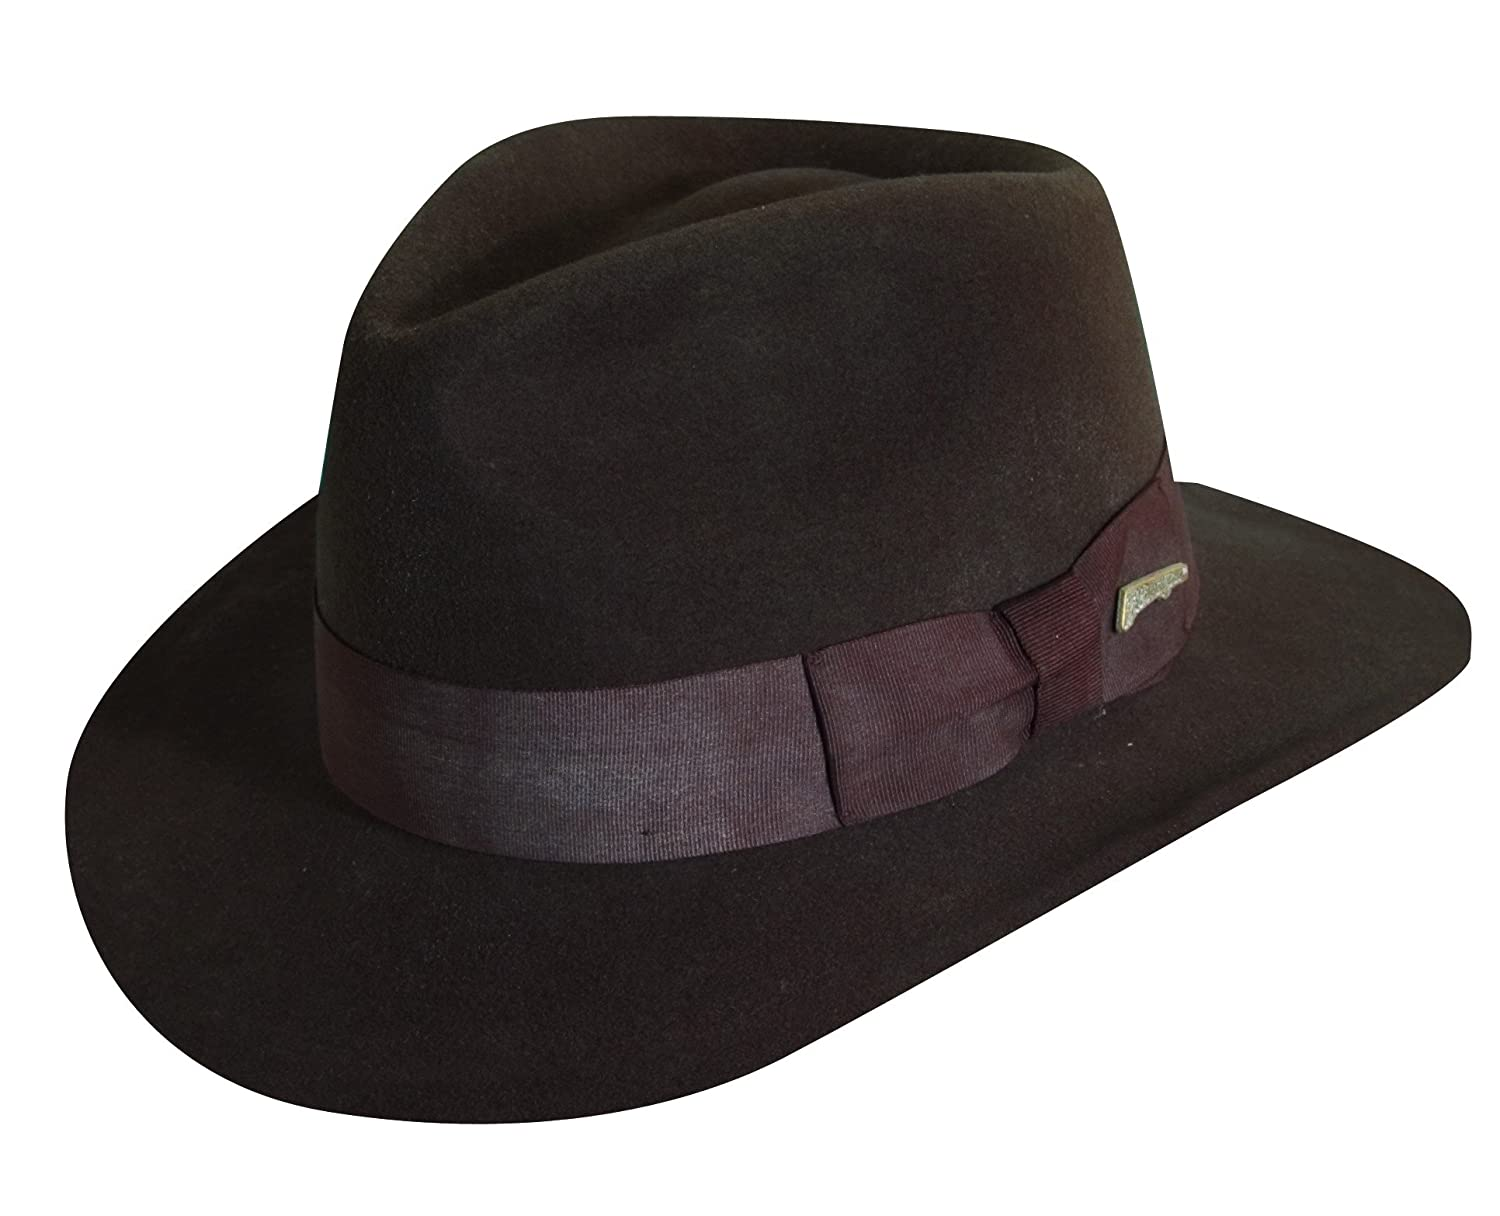 Indiana Jones Crushable Wool Felt Fedora Hats IJ559-Brown-S